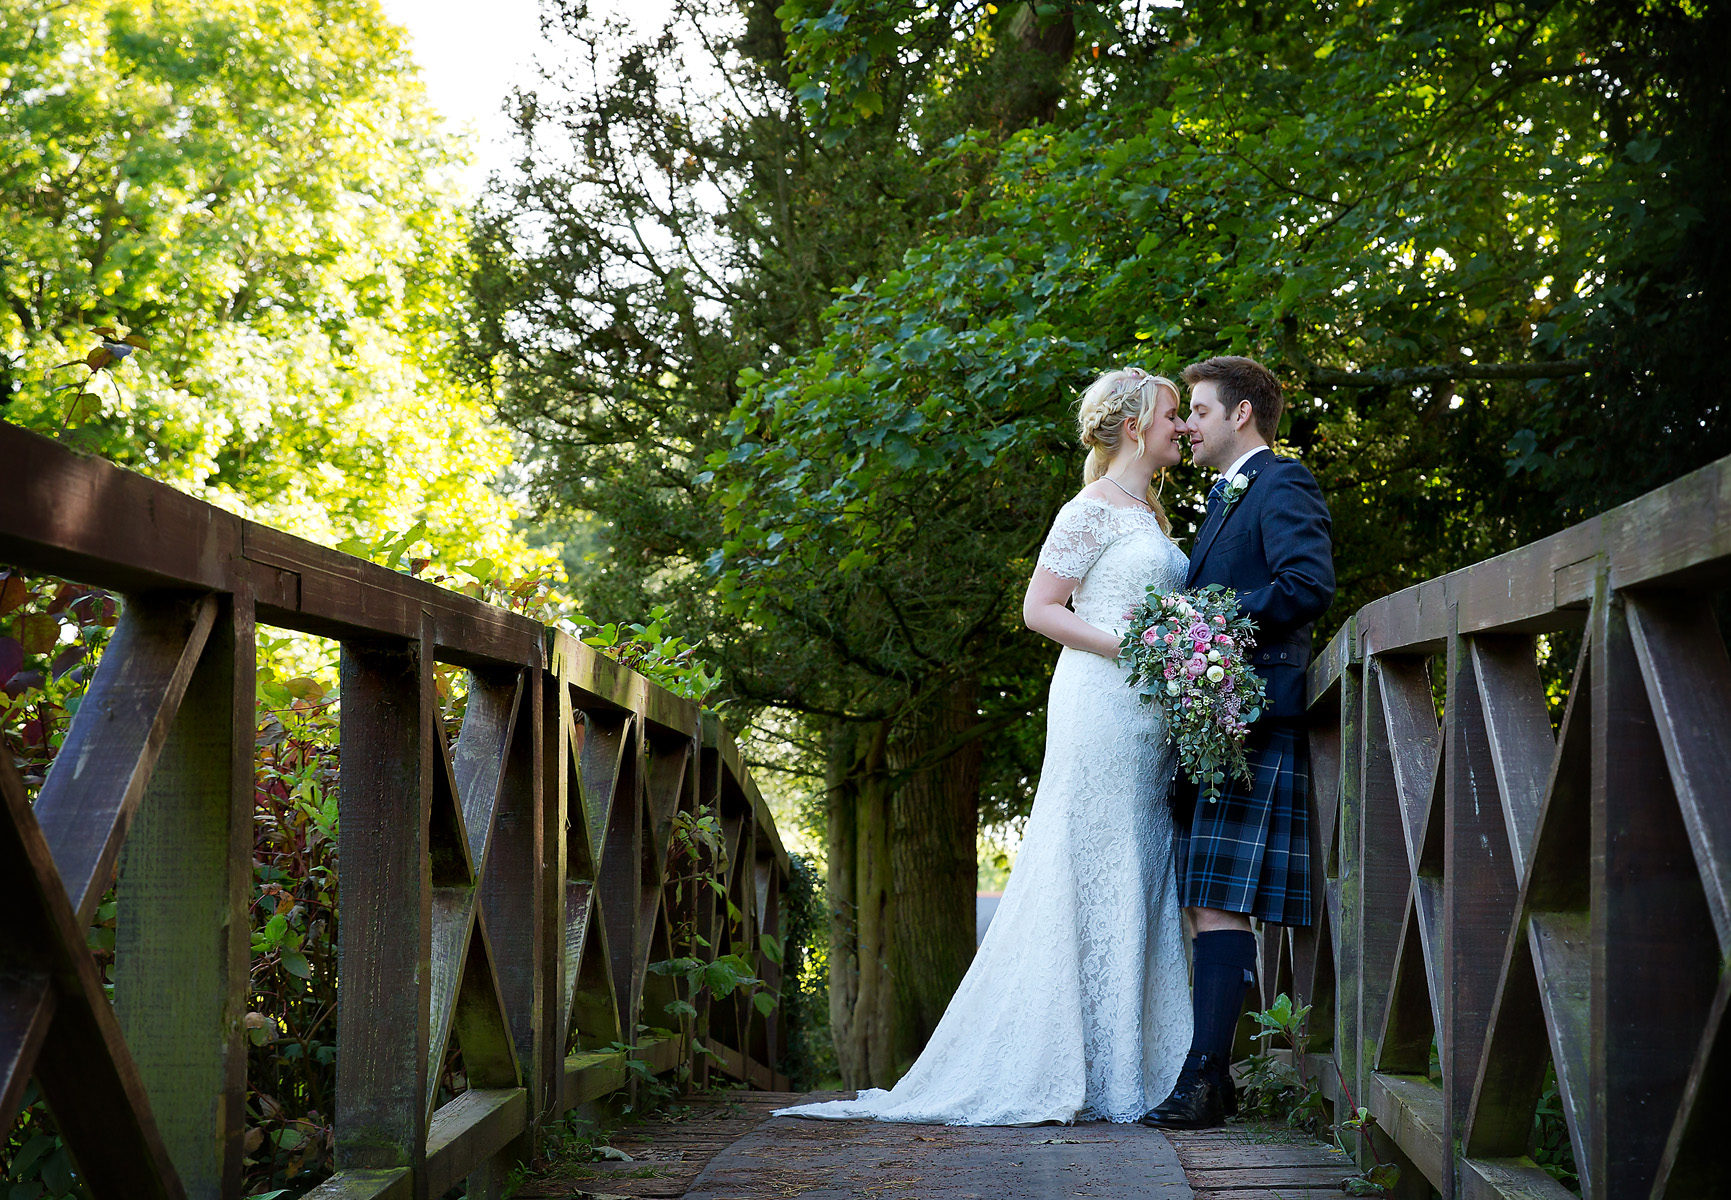 York Wedding Photographer Paul Hawkett Photography at Aldwalk Manor just outside York